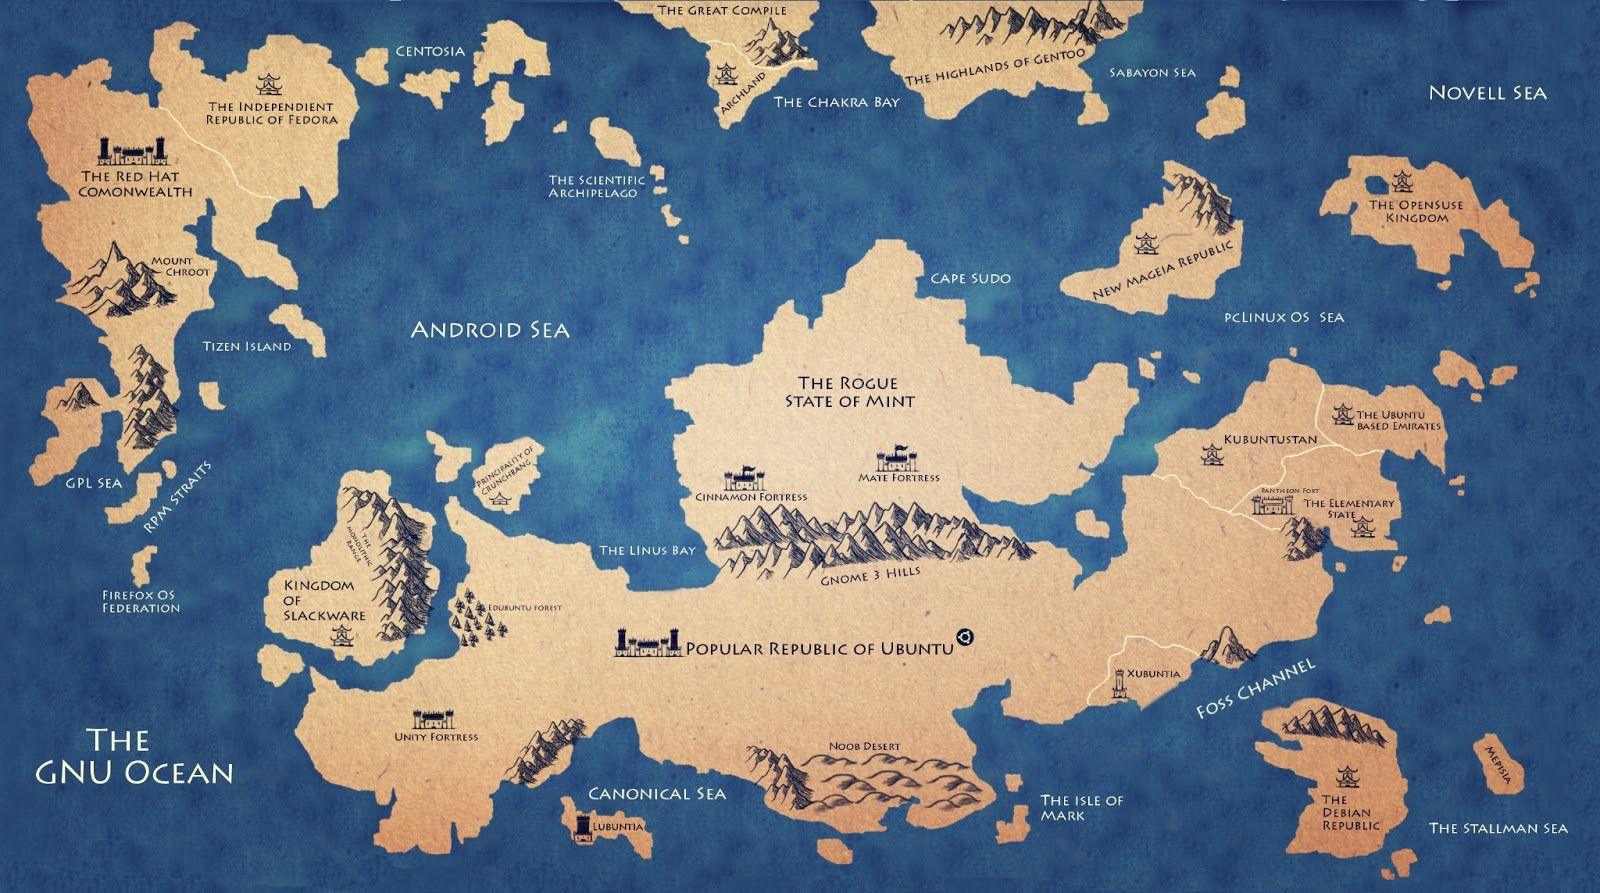 Game of thrones map game of thrones pinterest gaming game of thrones map gumiabroncs Image collections